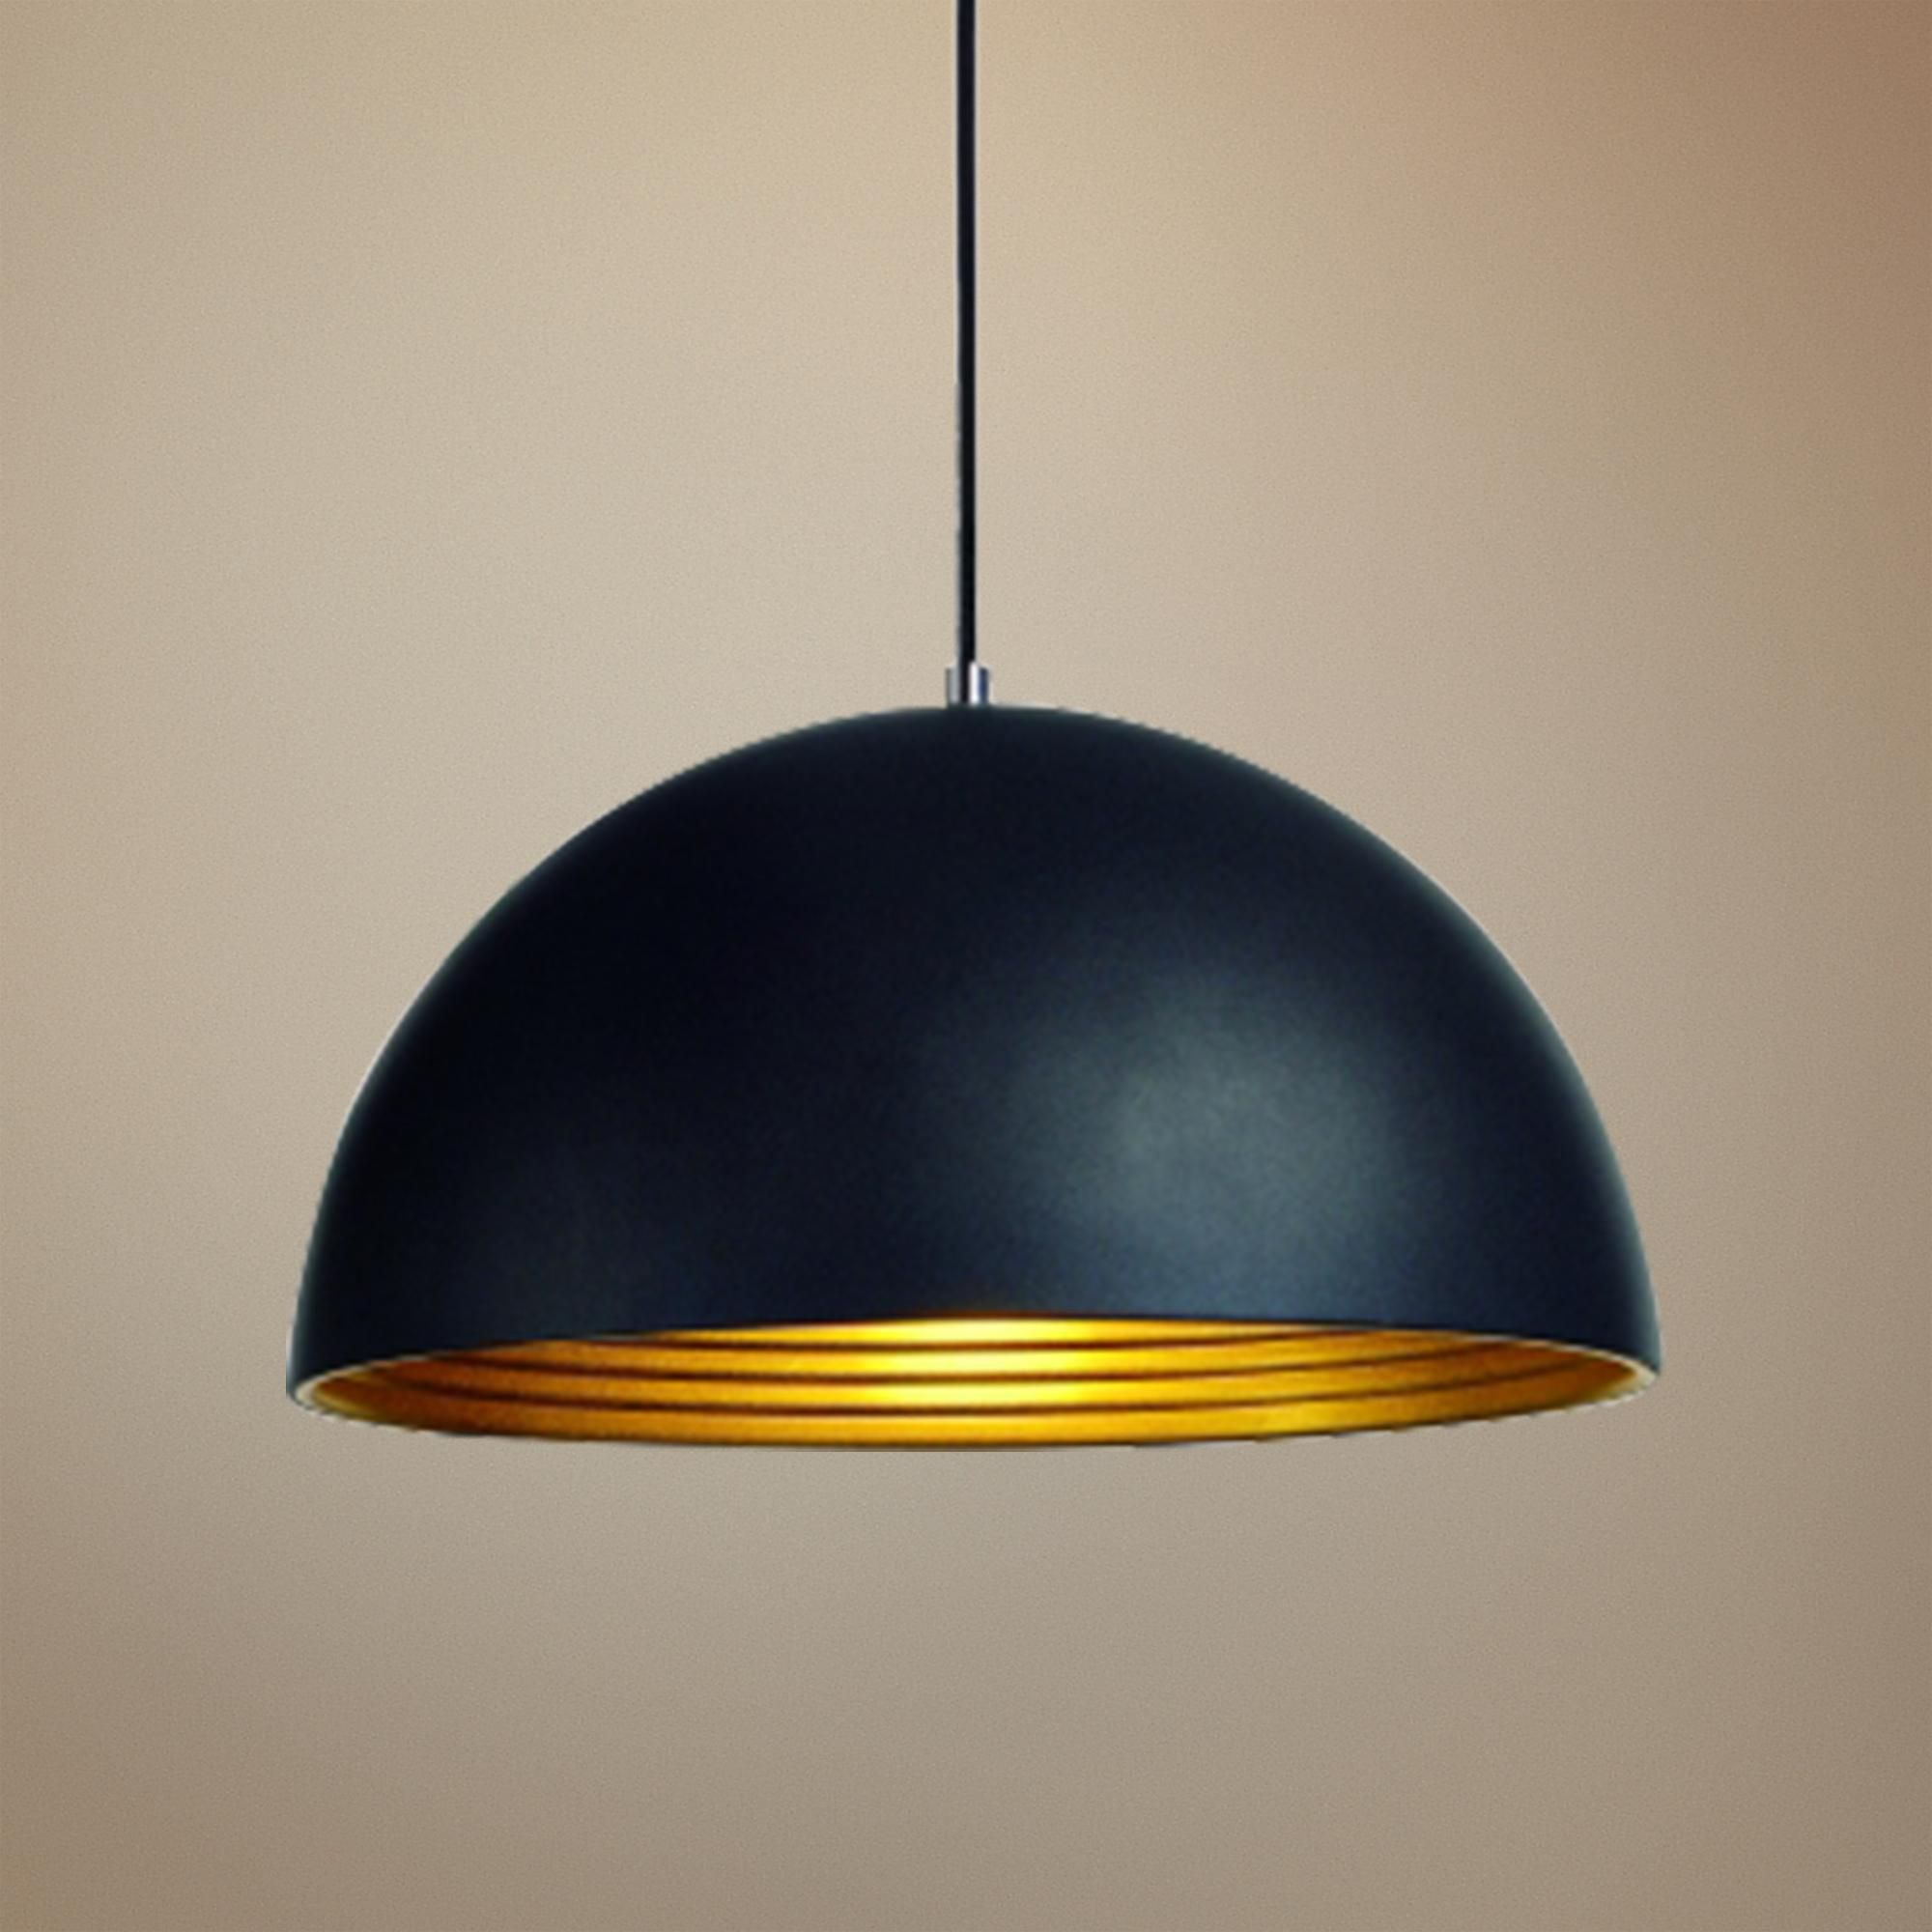 dome light pendant pd seed copper design gessato